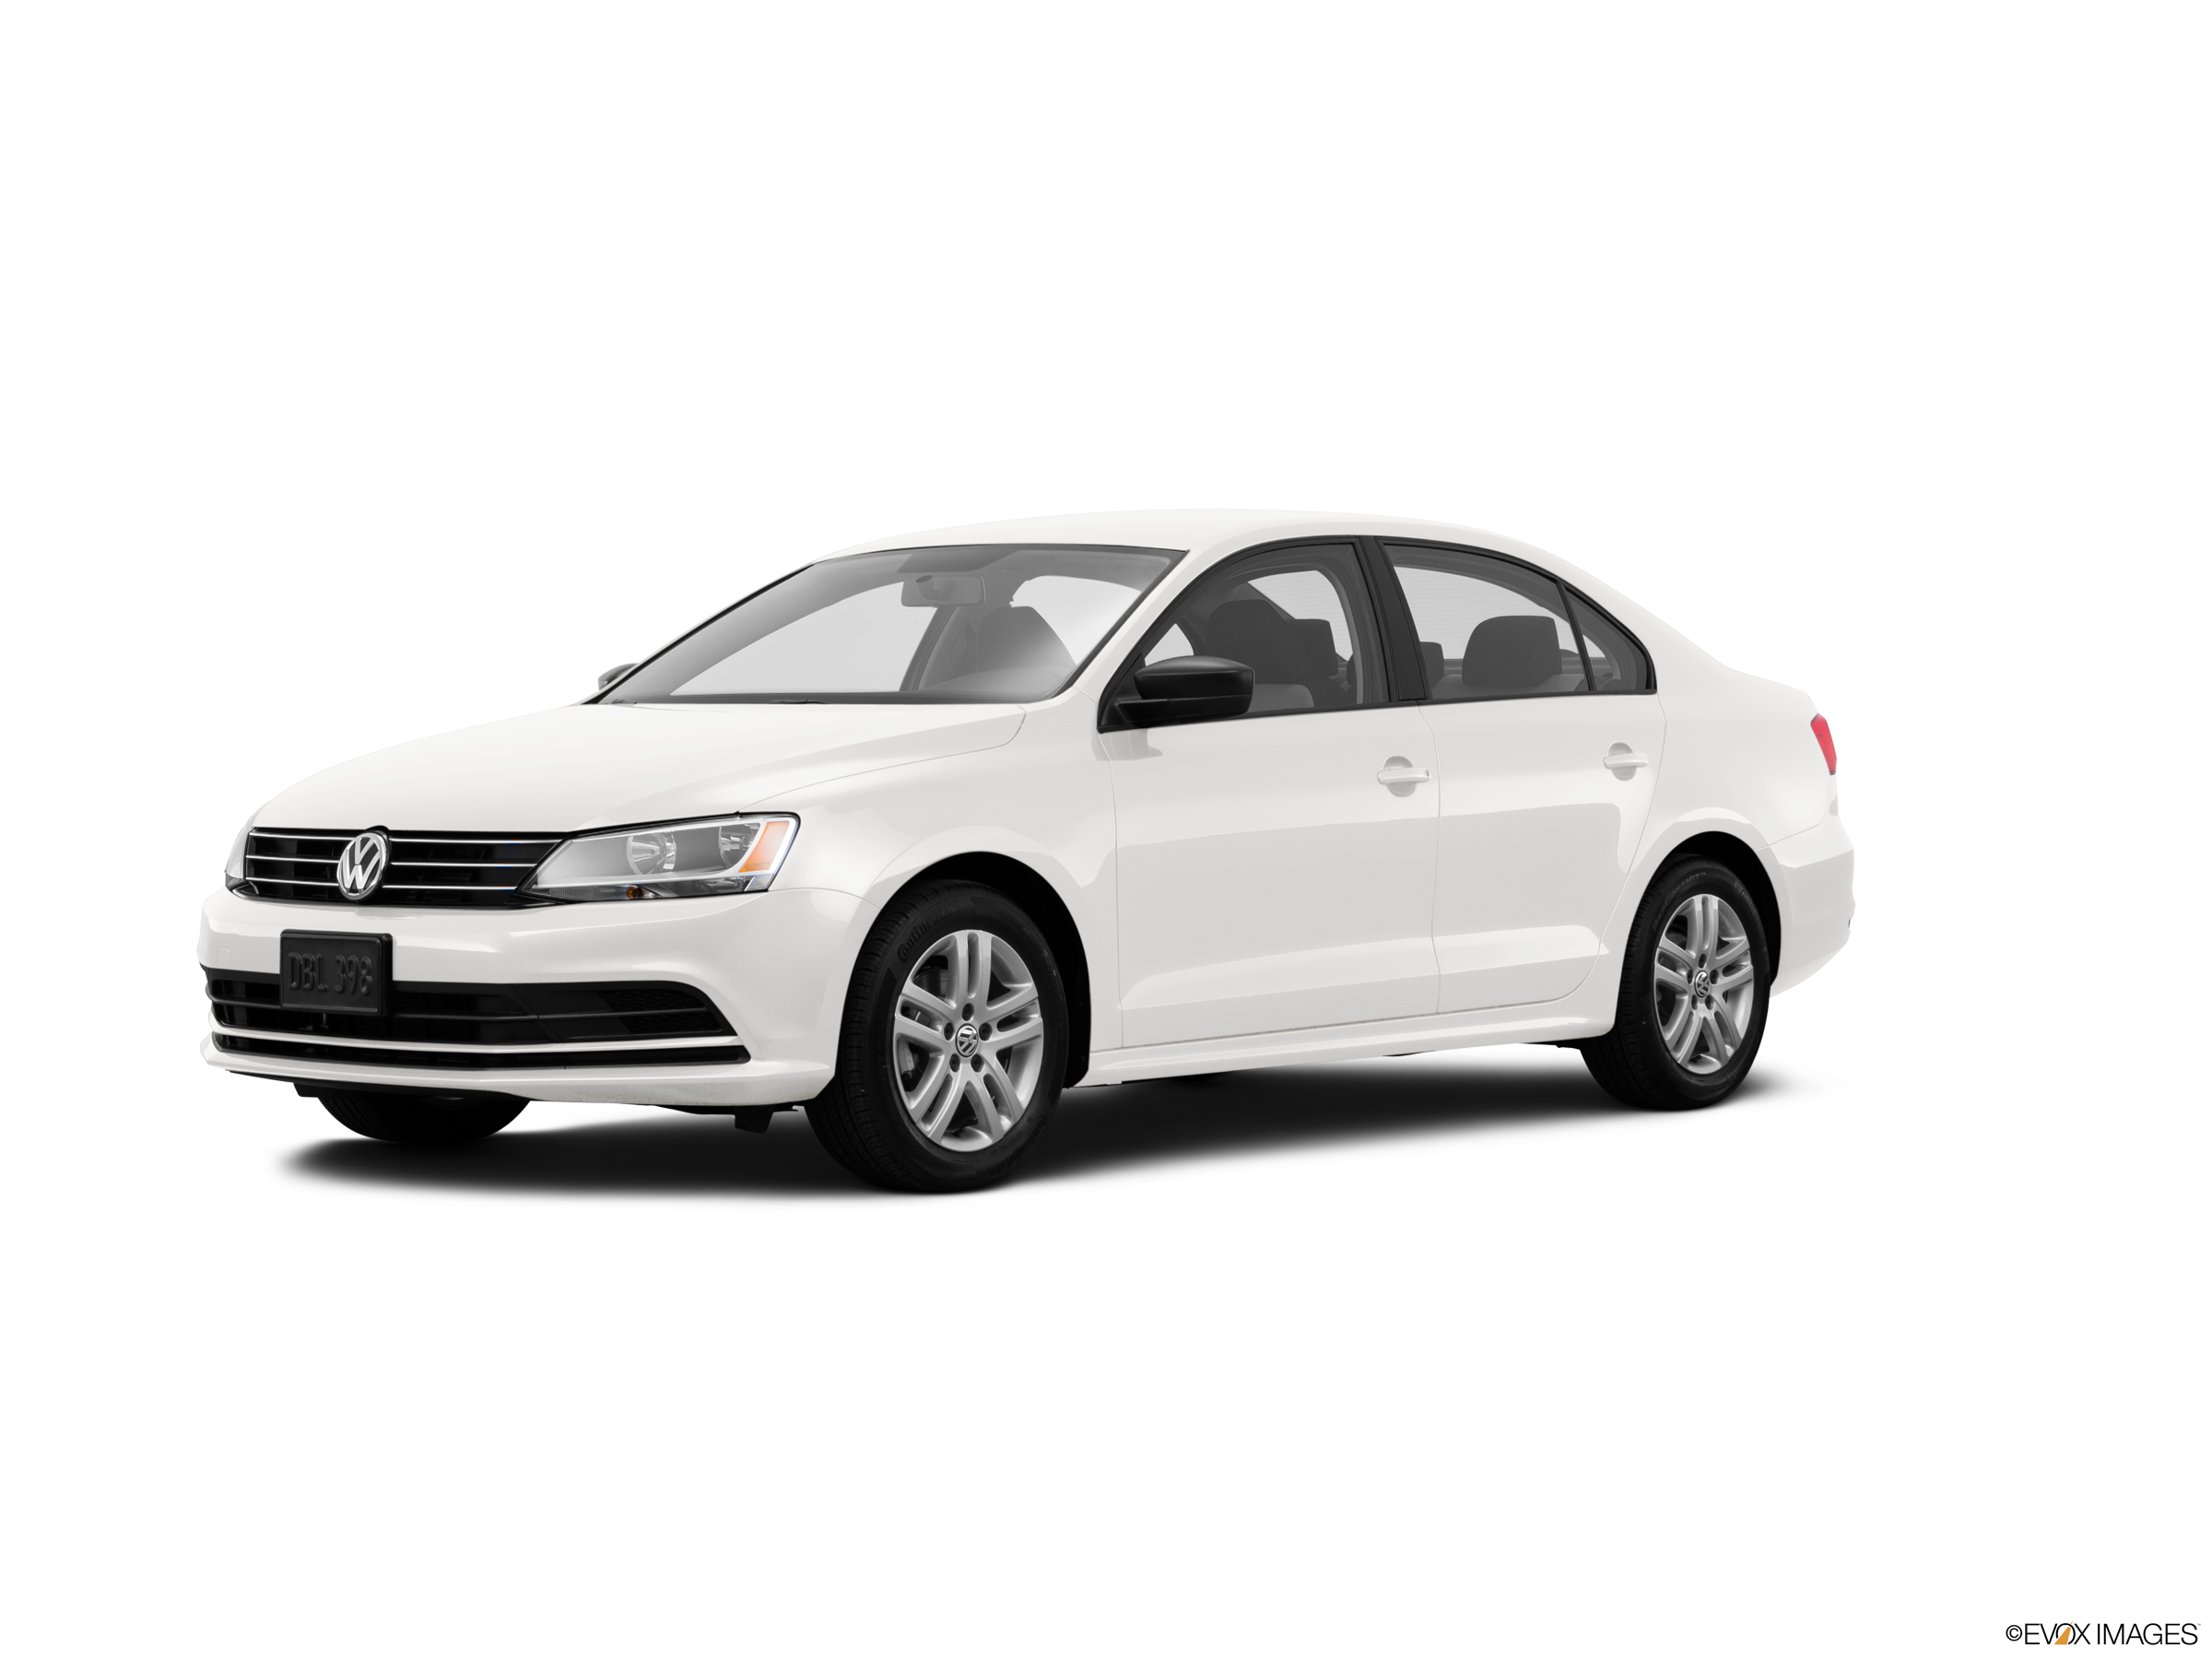 2015 Volkswagen Jetta Values Cars For Sale Kelley Blue Book